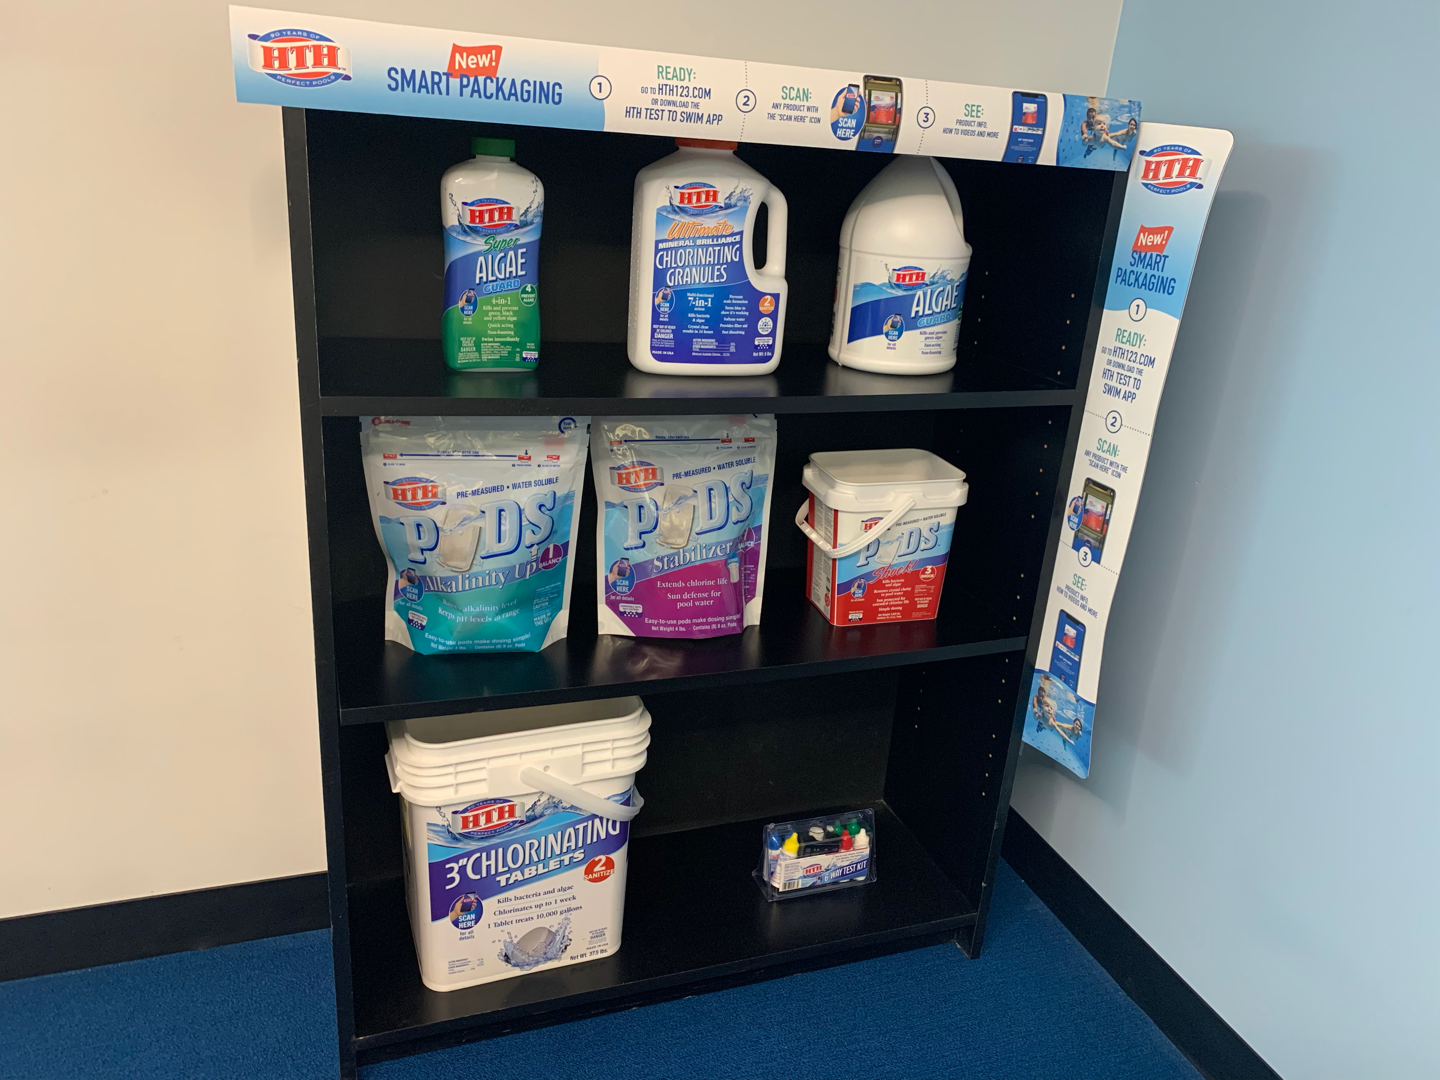 Display shelf with products and shelf talkers